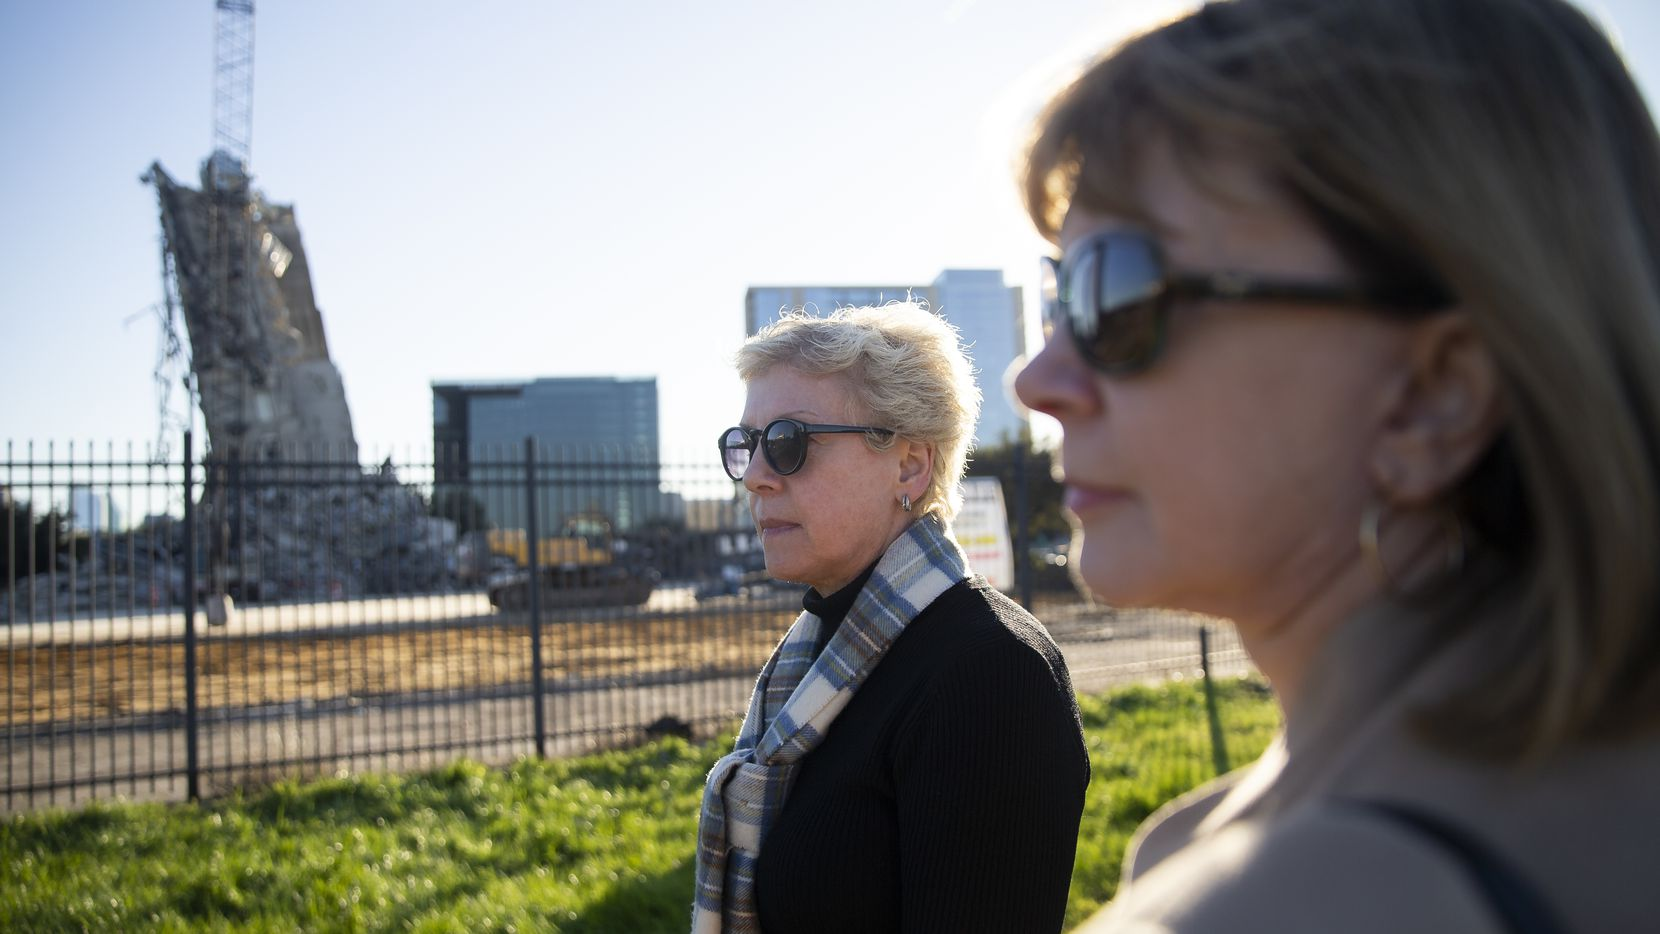 Ann Spillman (left) and Jane Spillman Wansley, daughters of the late Pat Y. Spillman of Fisher and Spillman, the architect group that designed the building that the Leaning Tower of Dallas used to be, stop to see the tower on Feb. 27, 2020 in Dallas. (Juan Figueroa/ The Dallas Morning News)